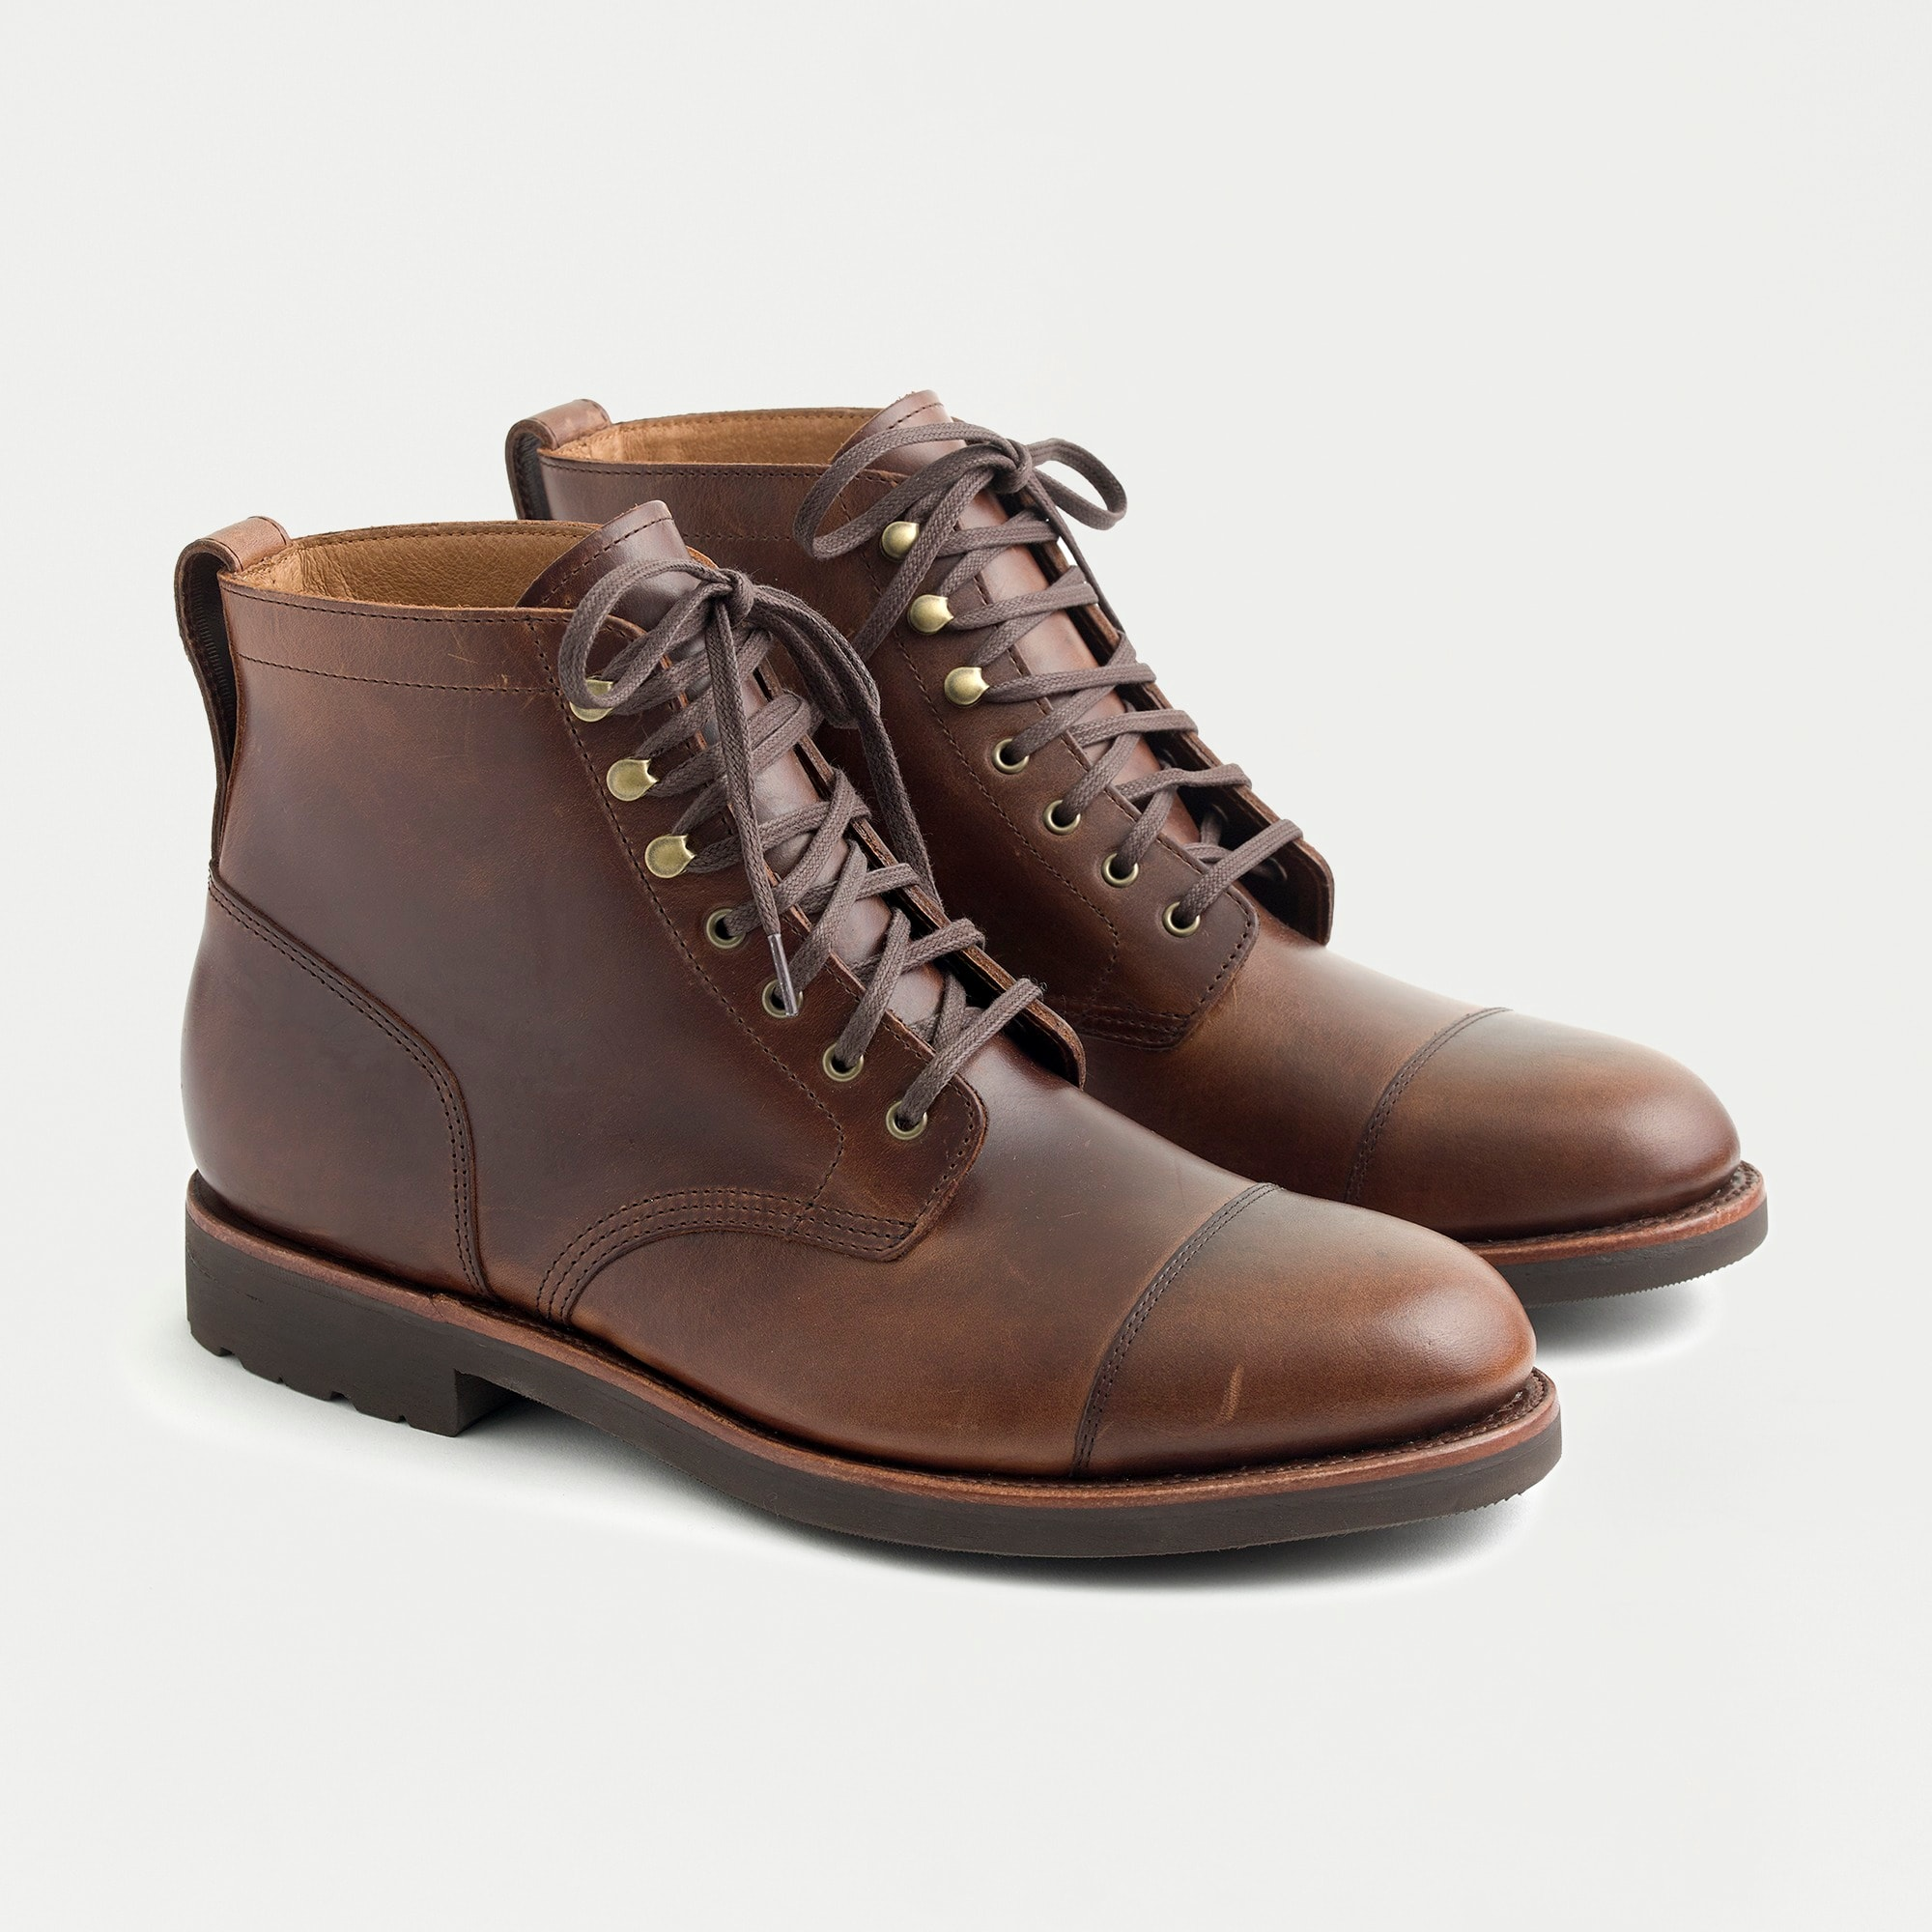 mens Kenton leather cap-toe boots